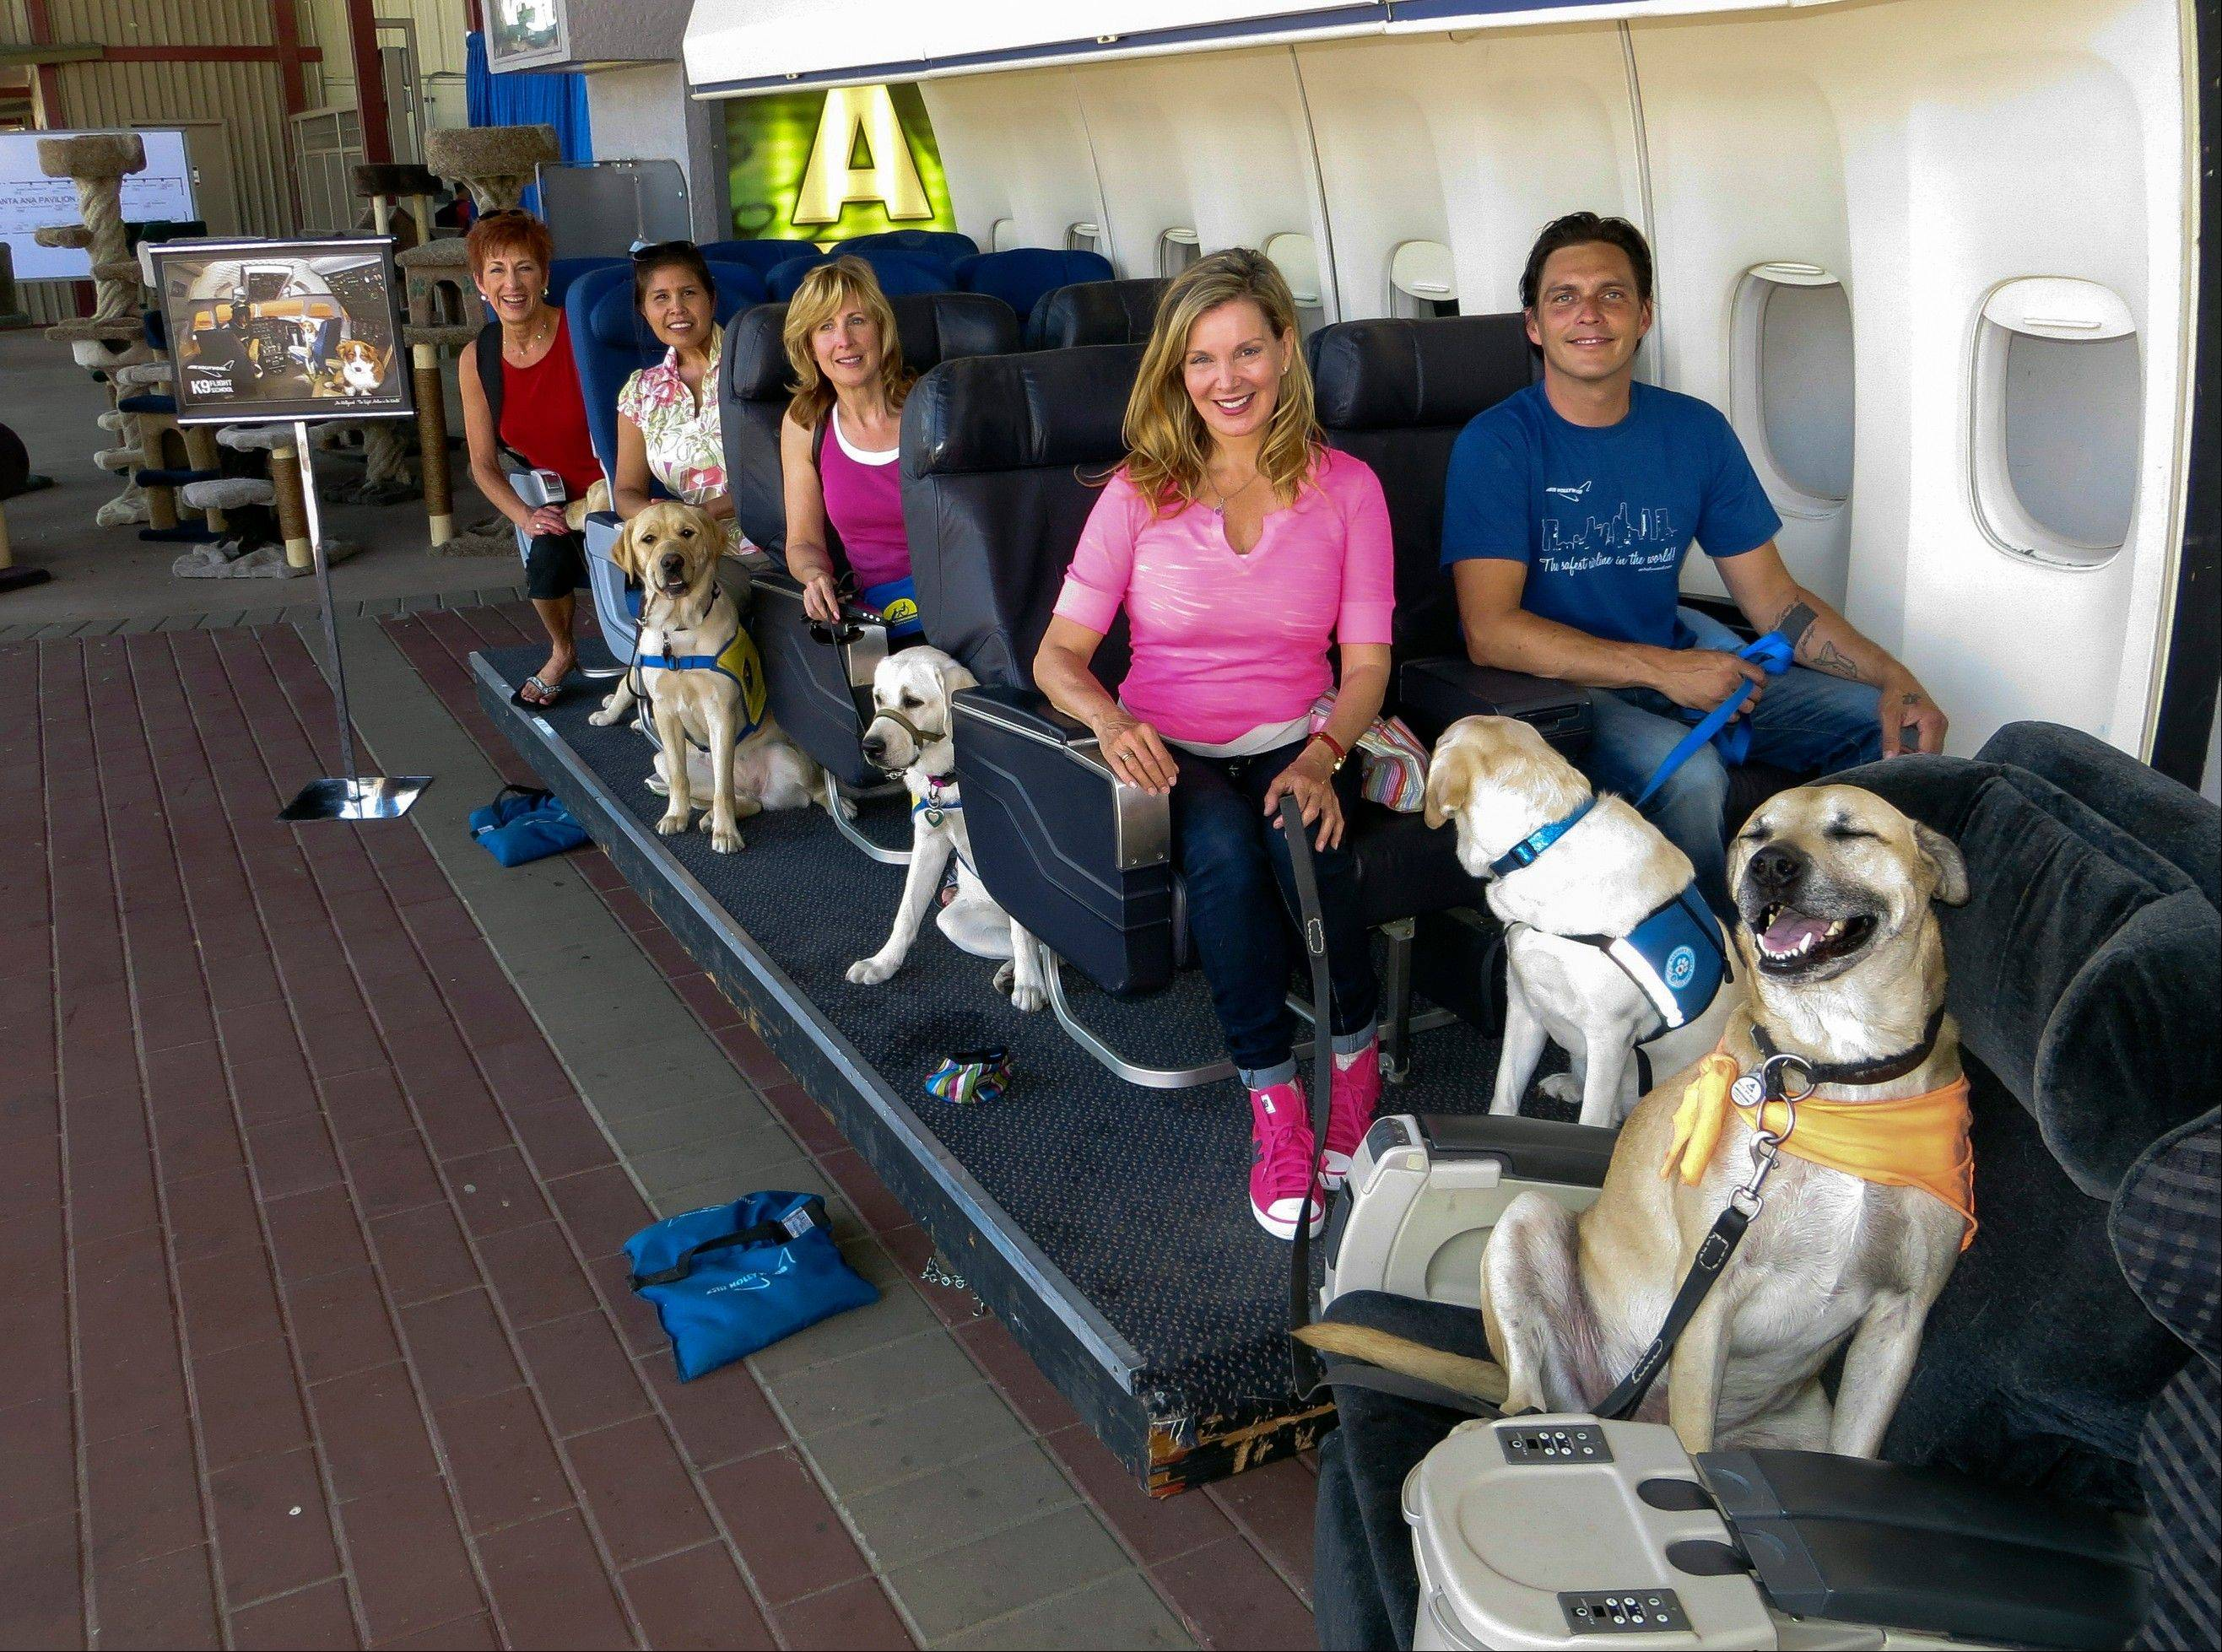 Megan Blake, Air Hollywood K9 Flight School program director, sitting left, front row, with dog Super Smiley, far right, and other puppies from the Canine Companions for Independence during a K9 flight simulation at the America's Family Pet Expo, at the Orange County Fair Grounds in Costa Mesa, Calif.